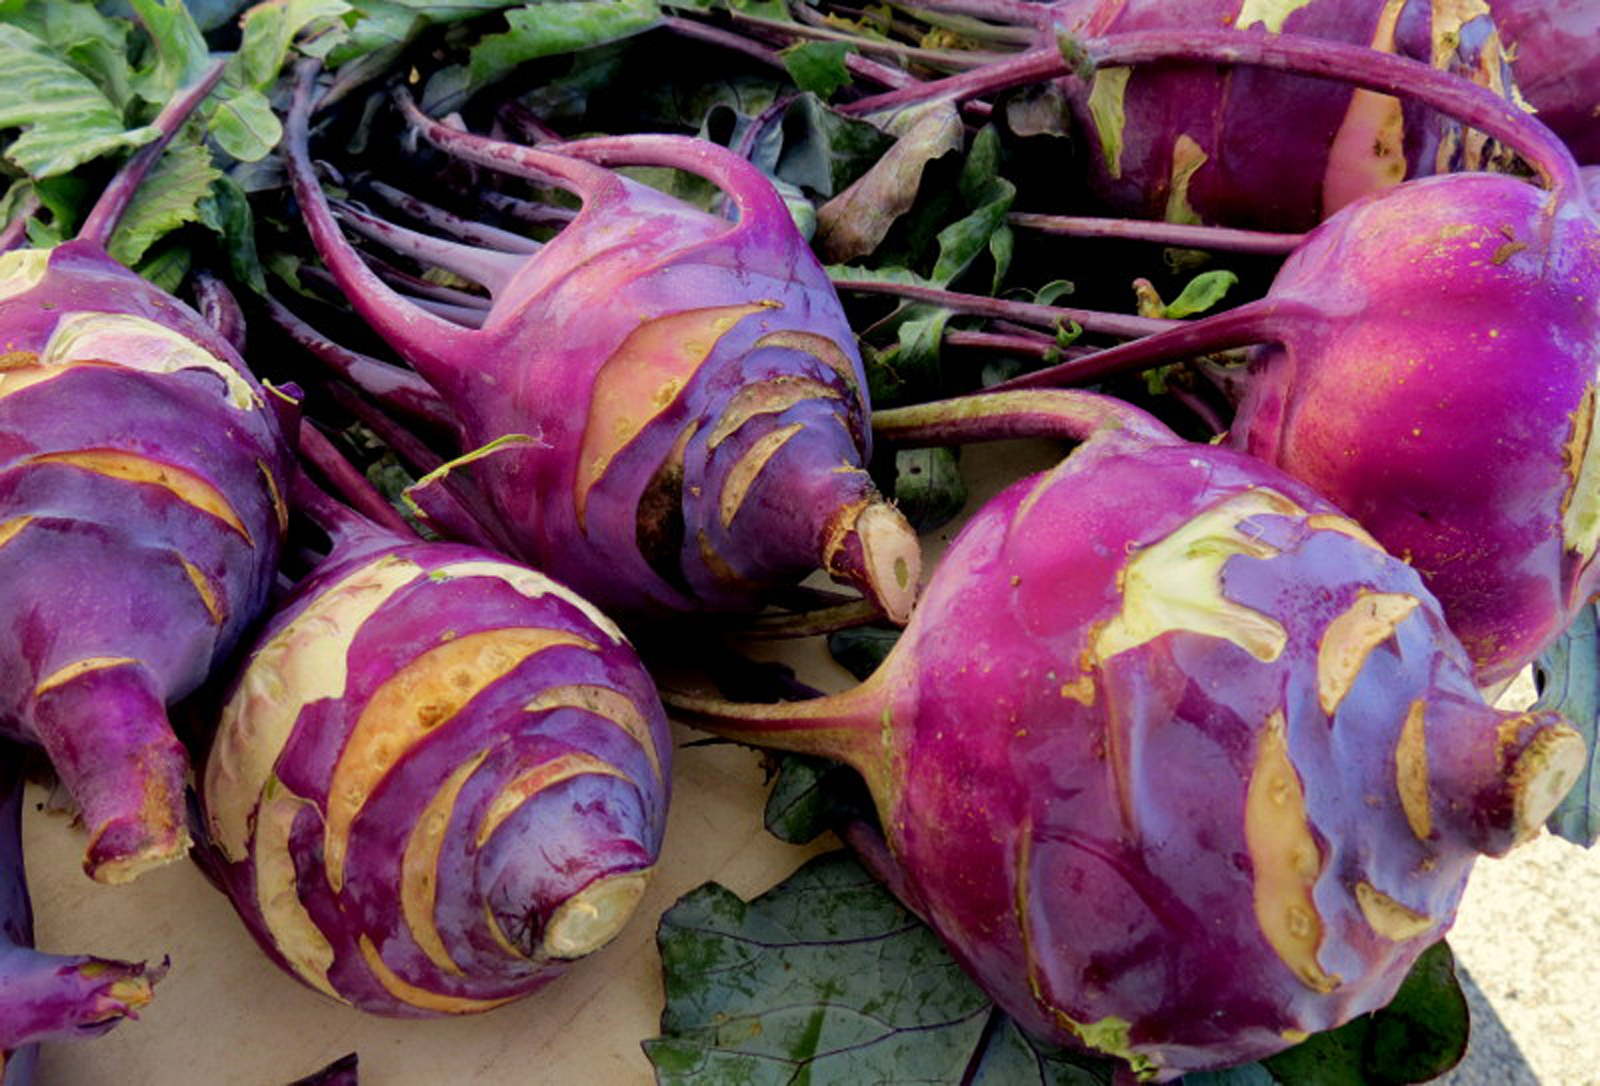 10 Under-Appreciated Veggies You Should Be Eating